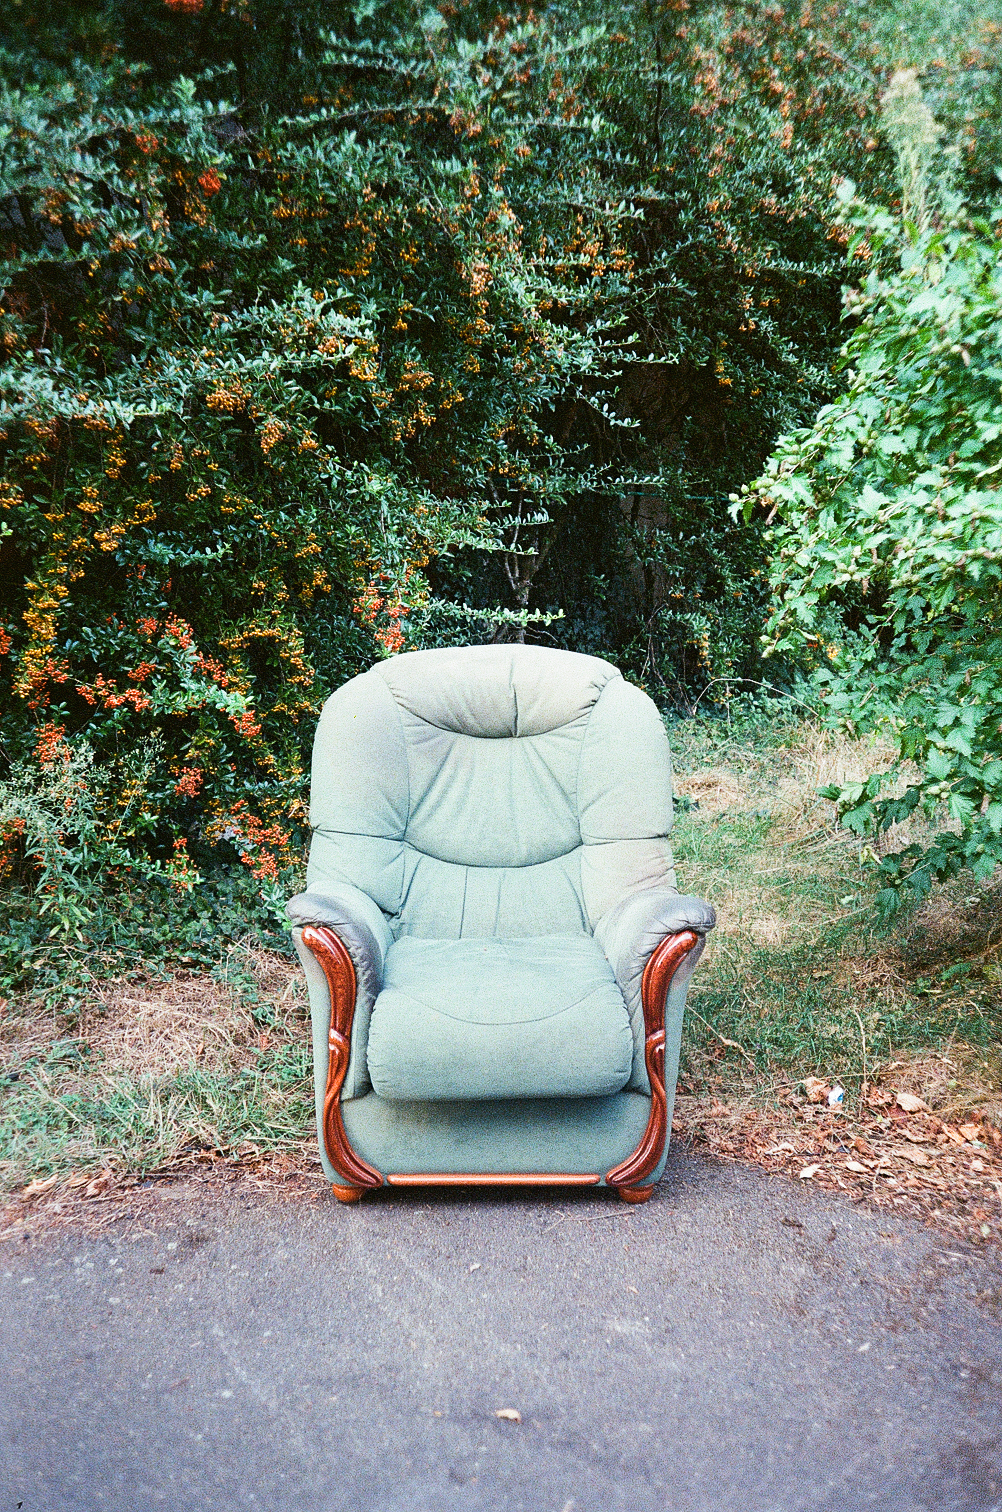 Bruno's Chair, Le Mans, France